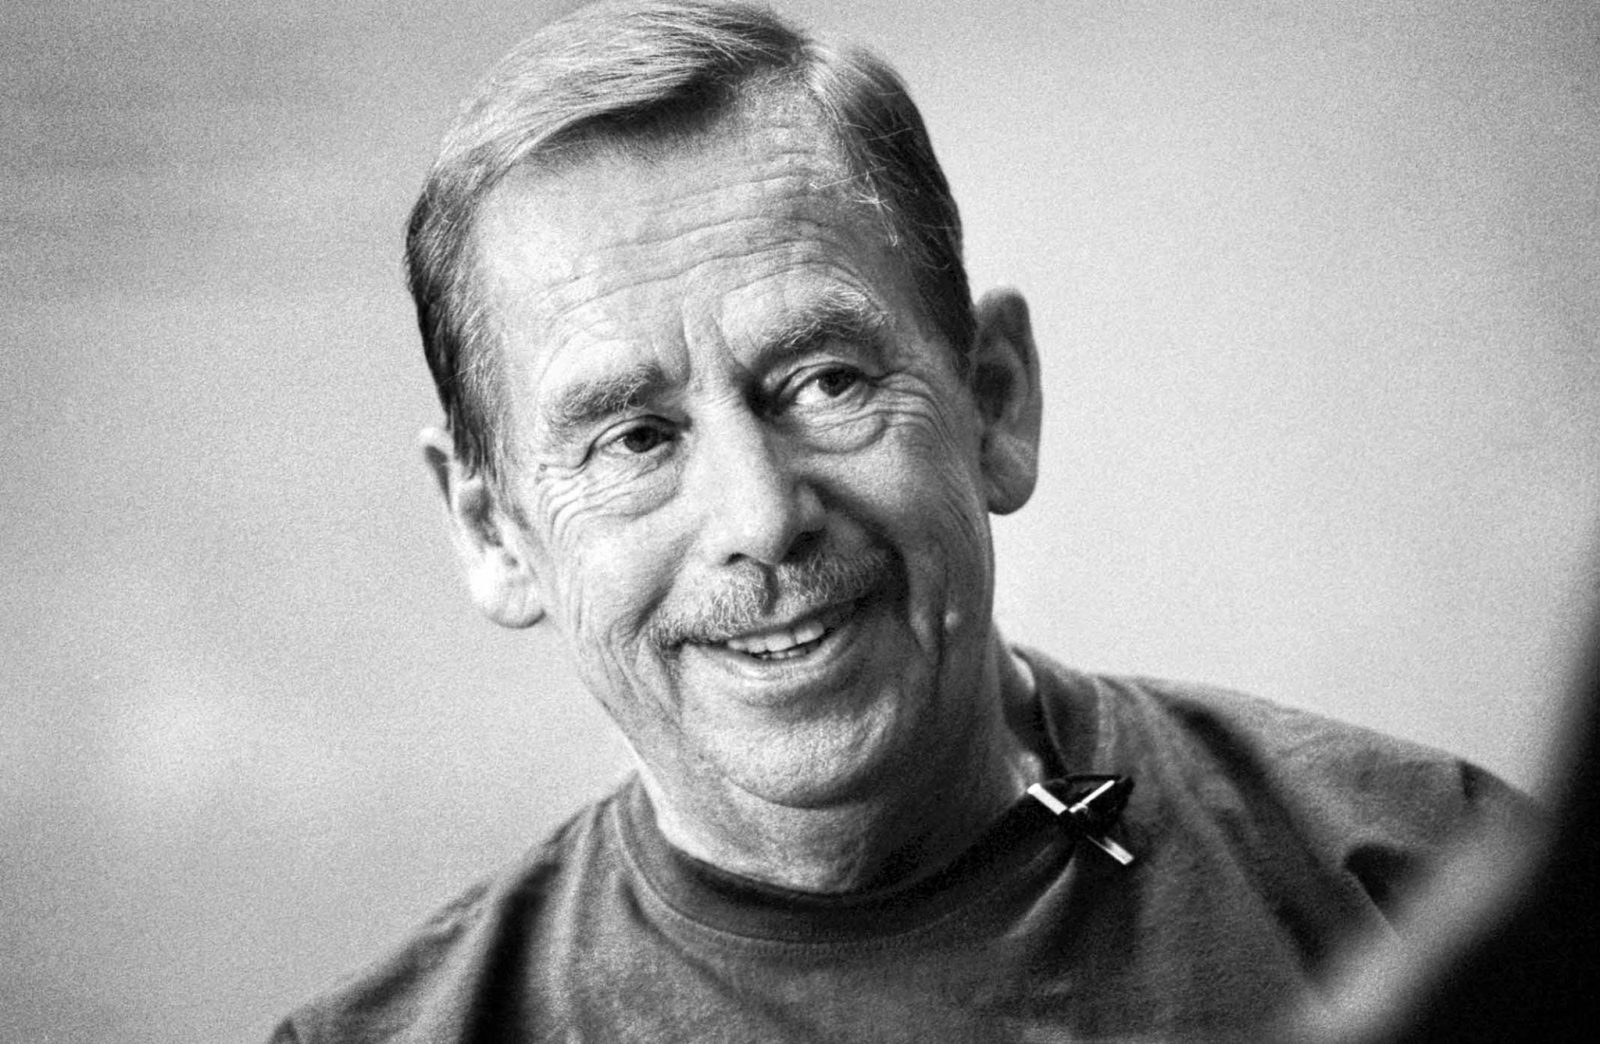 Late Czech president Václav Havel's East Bohemian countryside retreat could become a memorial site